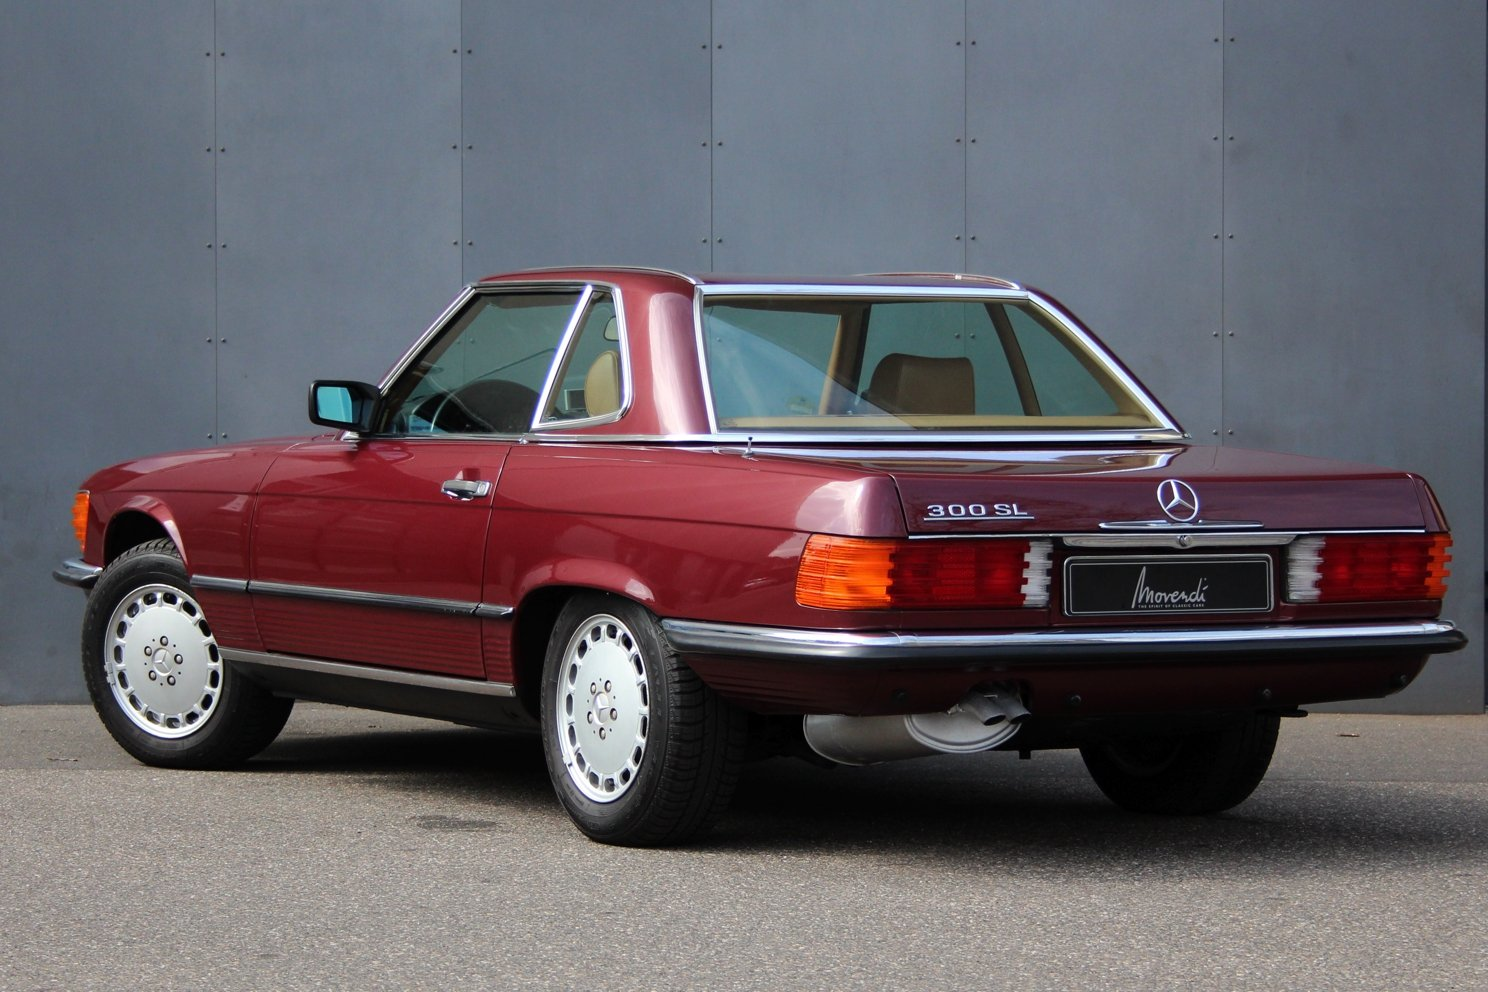 1986 Mercedes-Benz 300 SL LHD For Sale (picture 2 of 6)